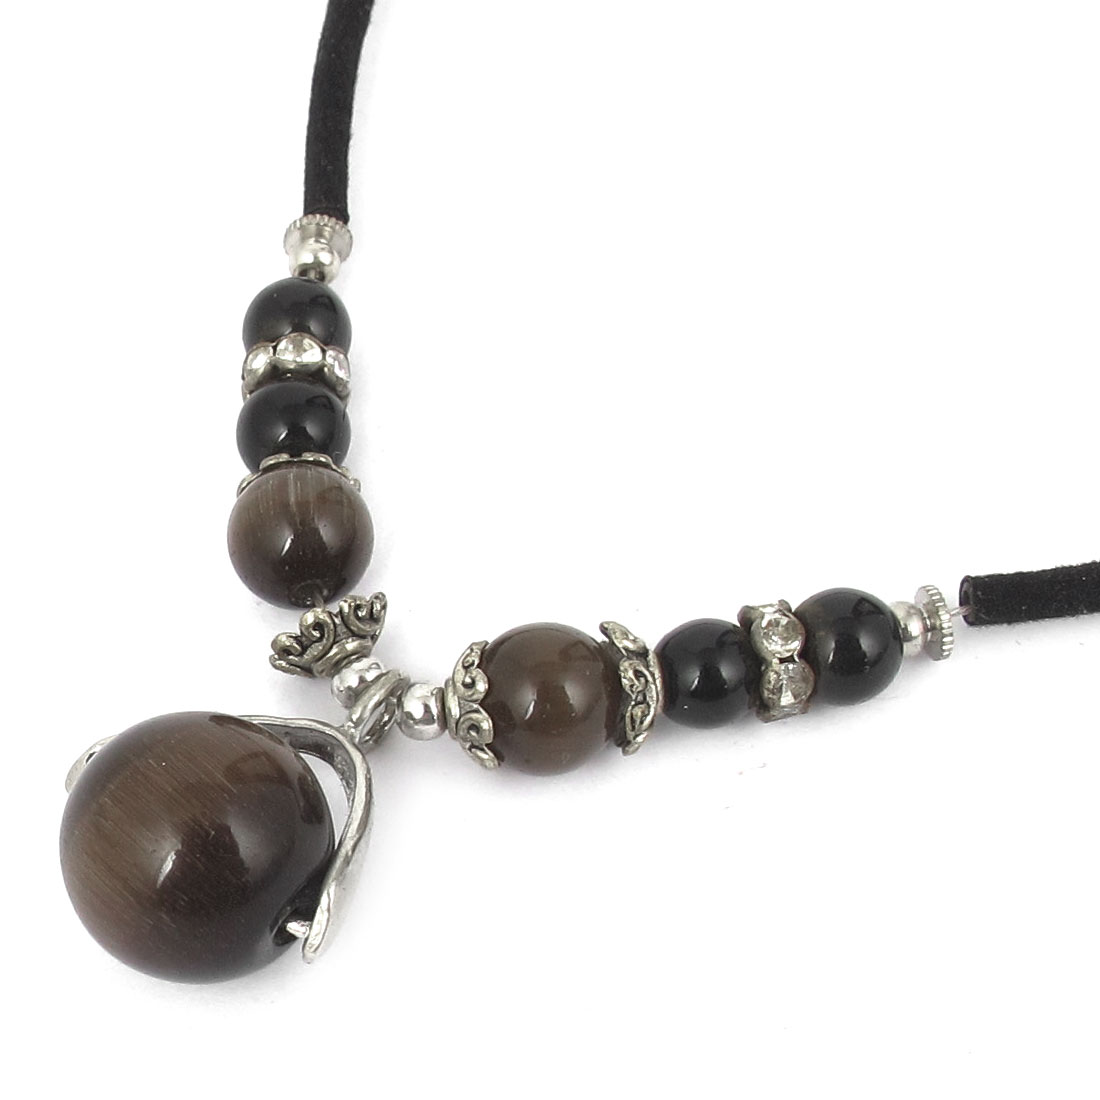 14mm OD Round Opal Bead Pendant Neck Ornament Necklace Coffee Color Black for Women